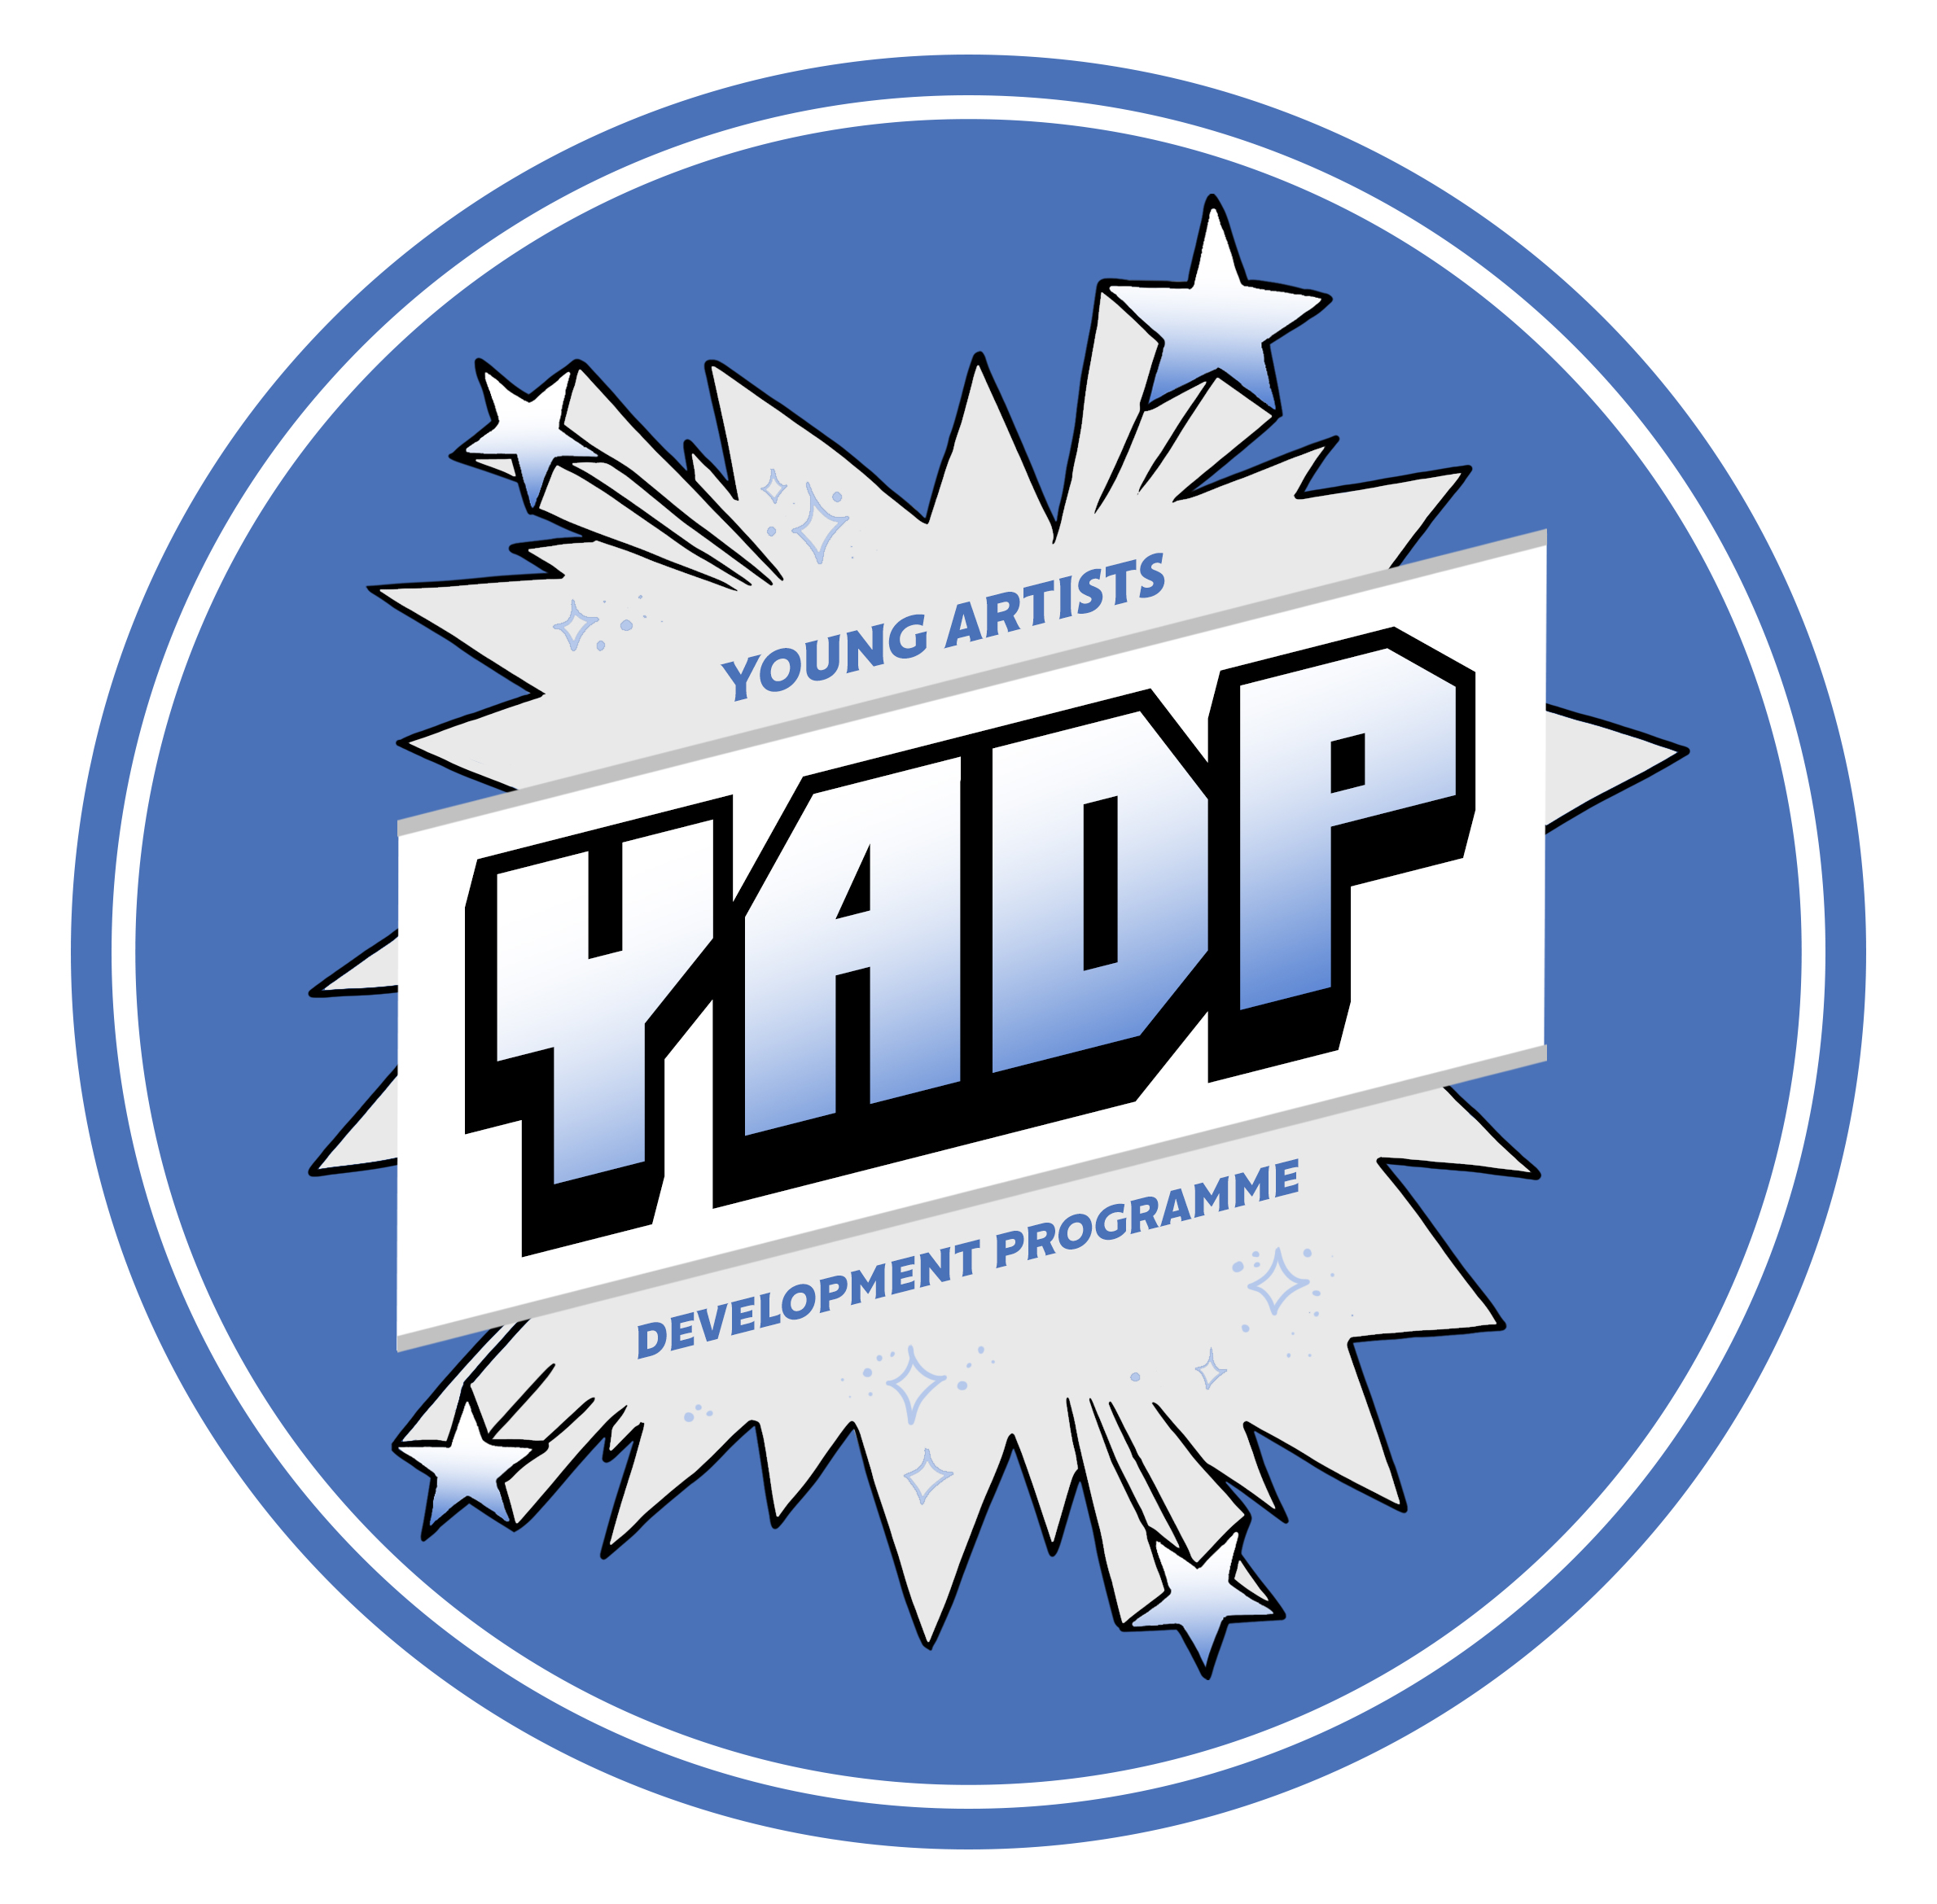 A silver and blue round logo for Touretteshero's Young Artist's Development Programme Logo. The abbreviation YADP sits in the centre of a comic book style jagged bubble with stars coming from each corner.